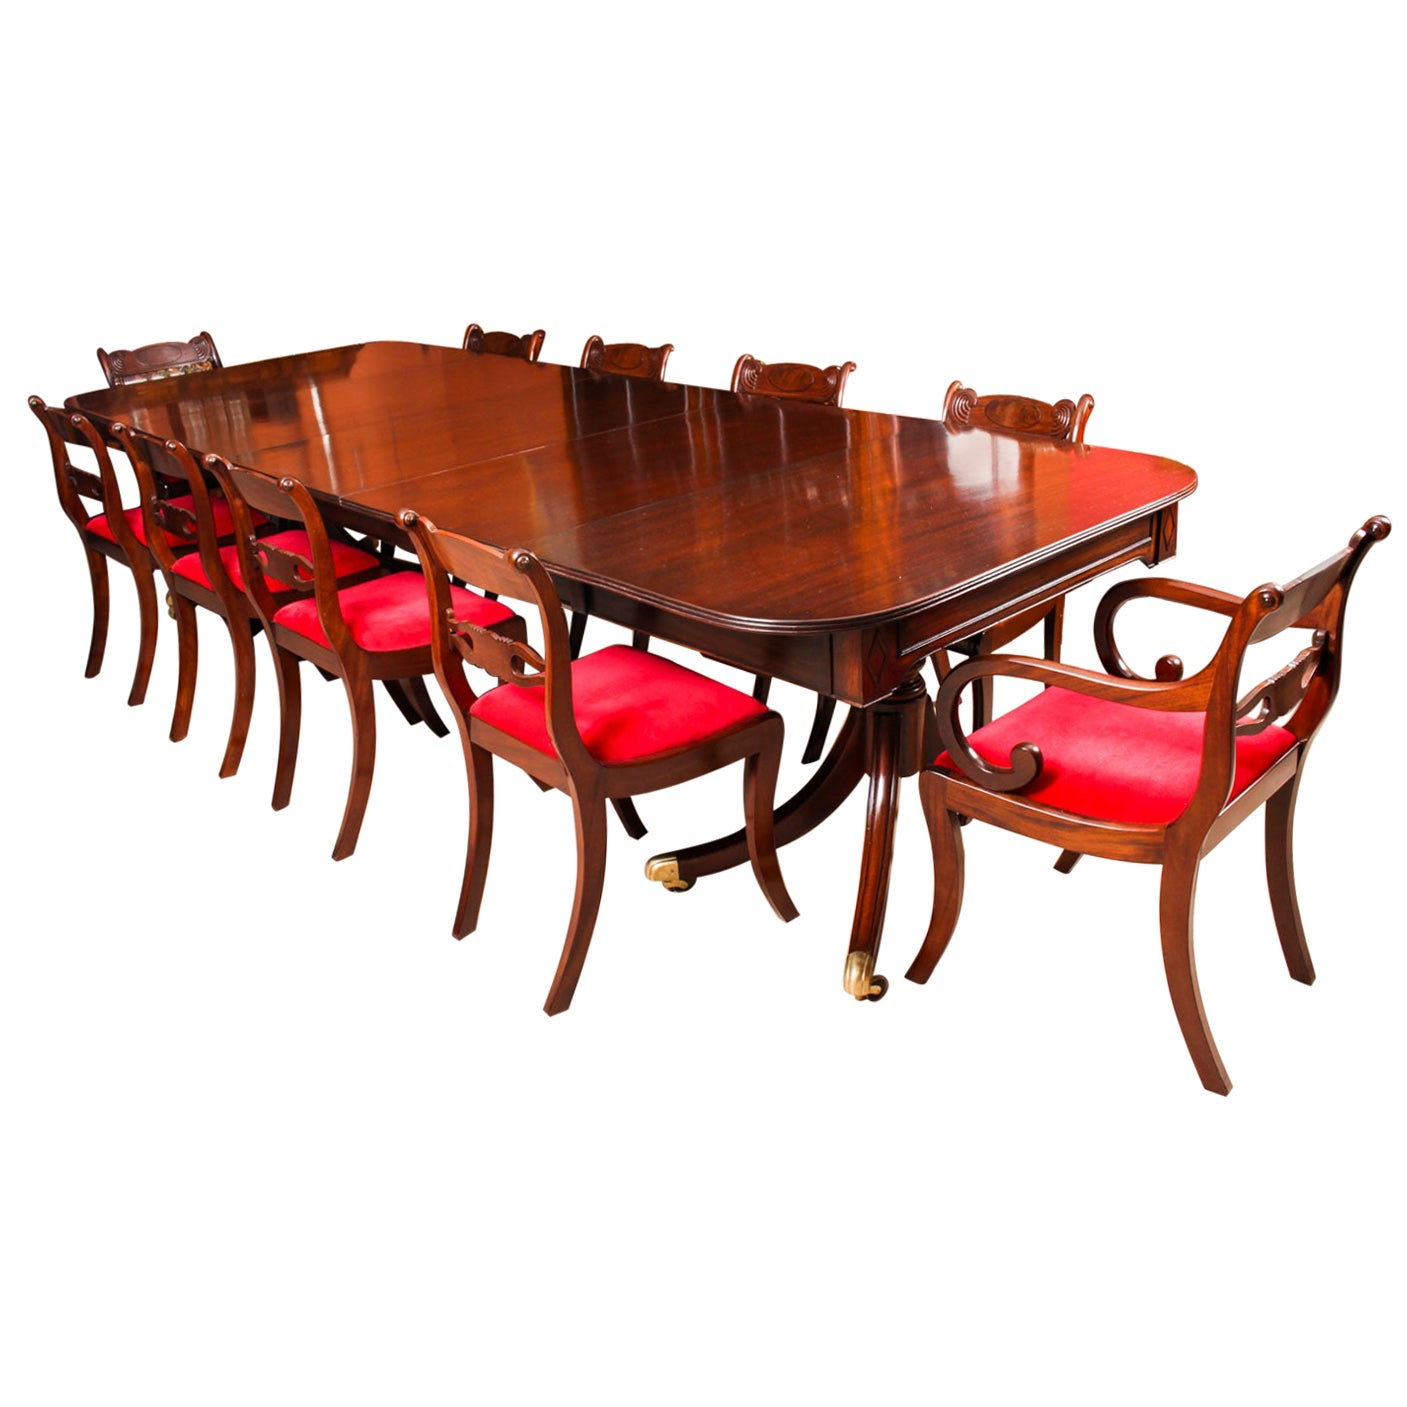 Antique Twin Pillar Regency Dining Table and 10 Regency Chairs, 19th Century